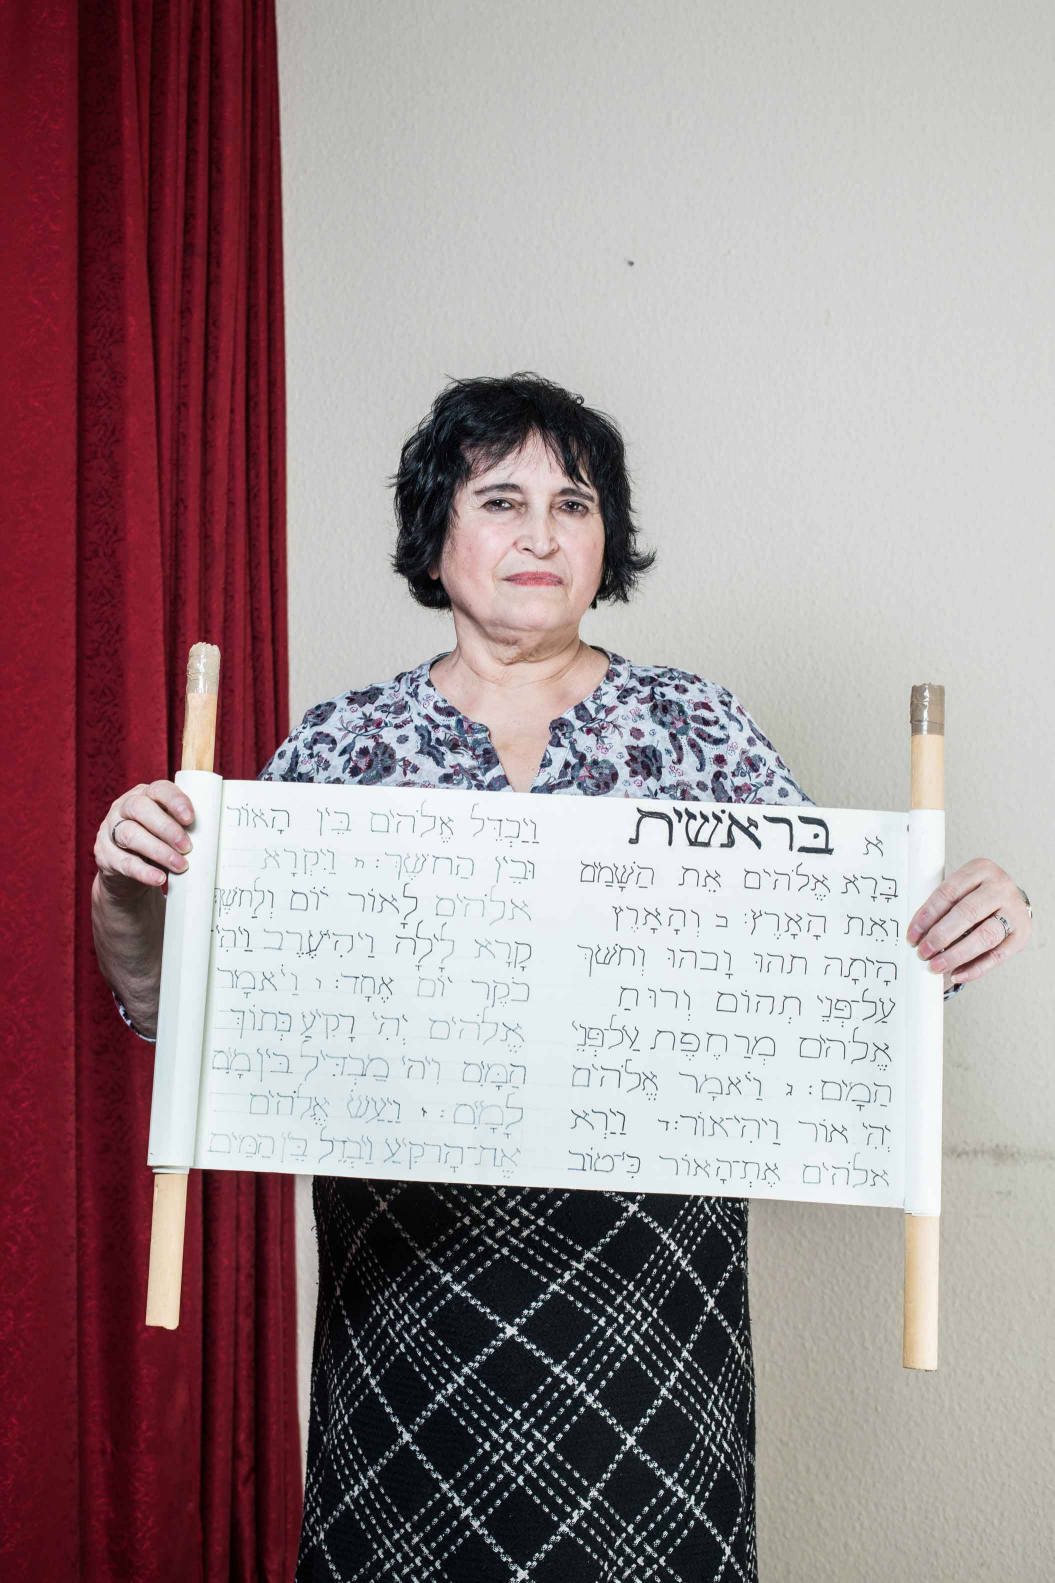 A woman holding a Torah scroll in her hands